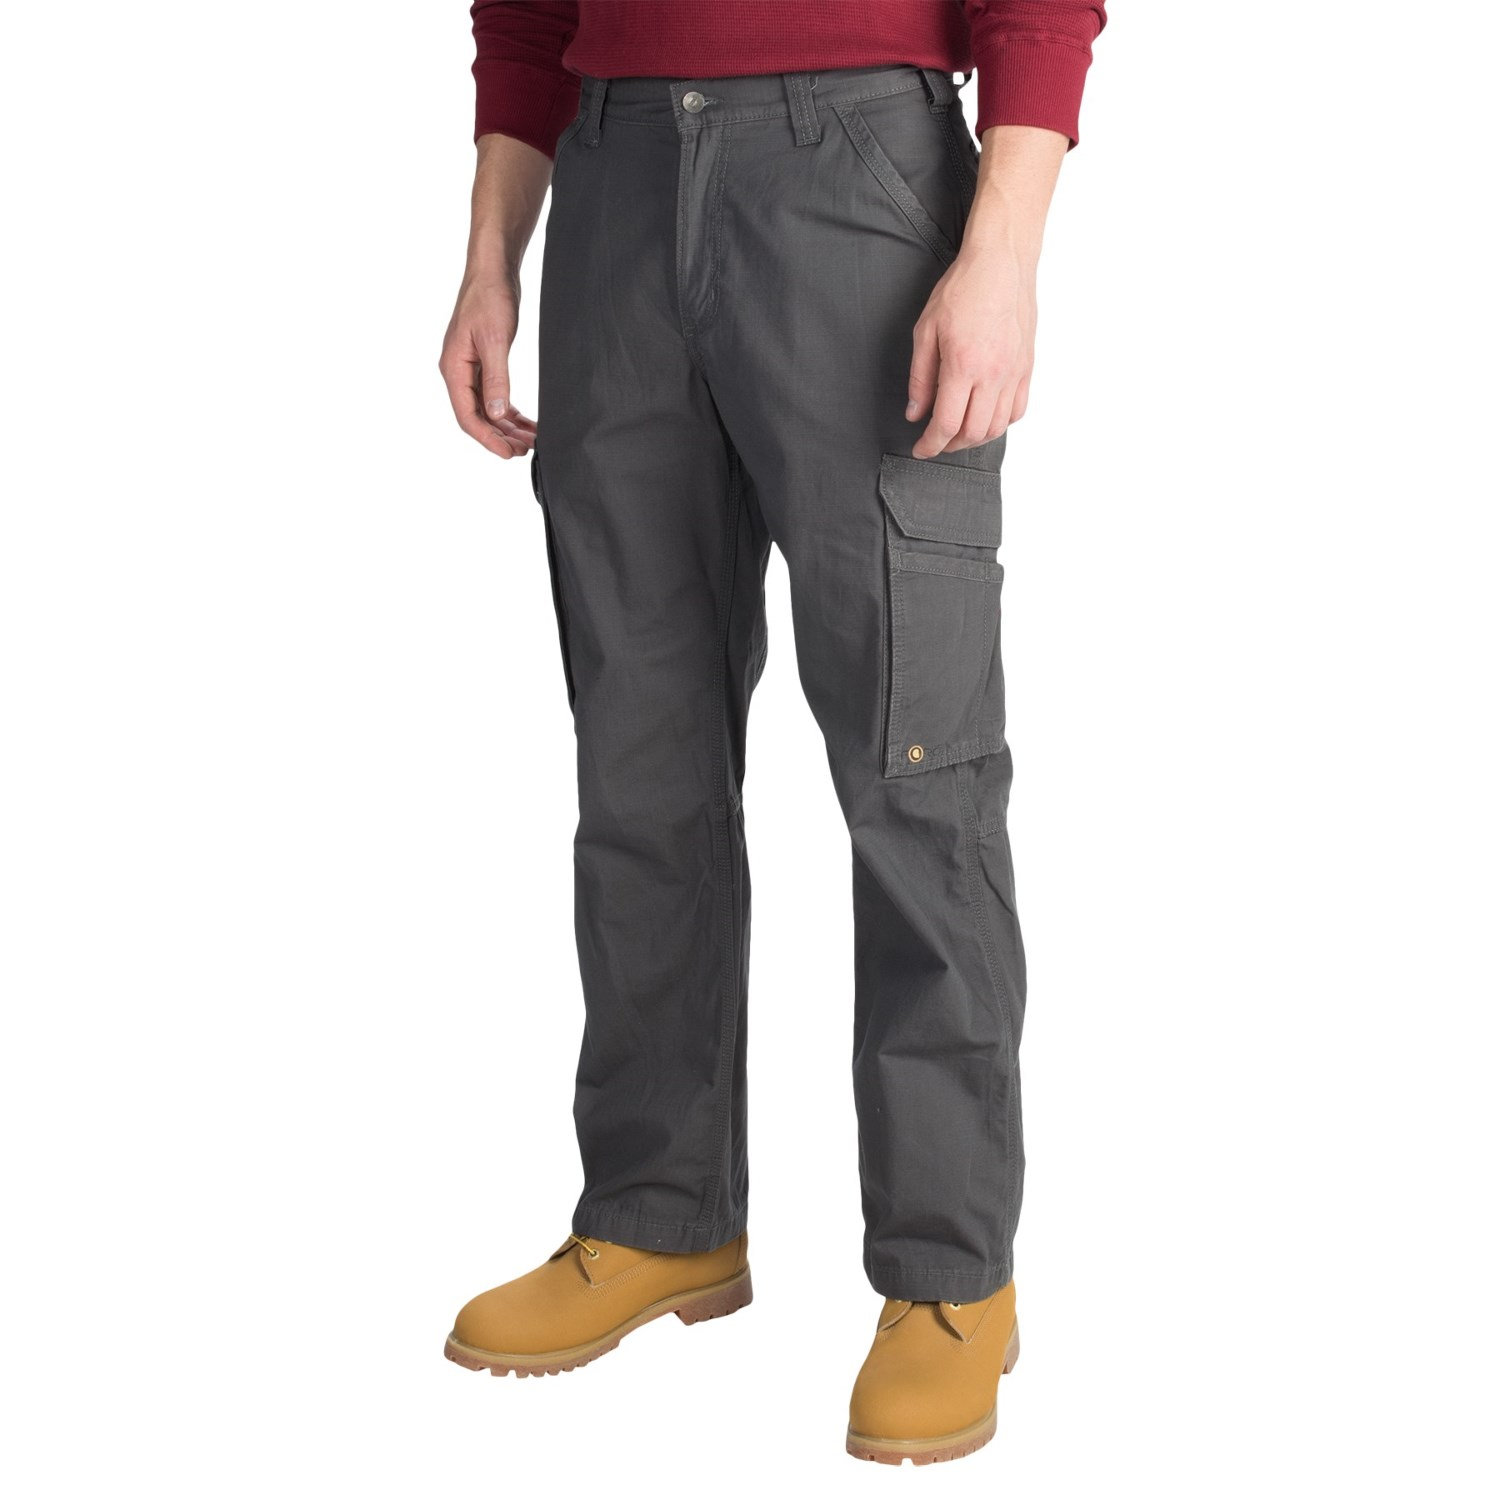 Levi's® big and tall jeans have a laid-back and relaxed fit with a slightly tapered leg. Browse Levi's® big and tall relaxed fit jeans and pants at Levi's®.